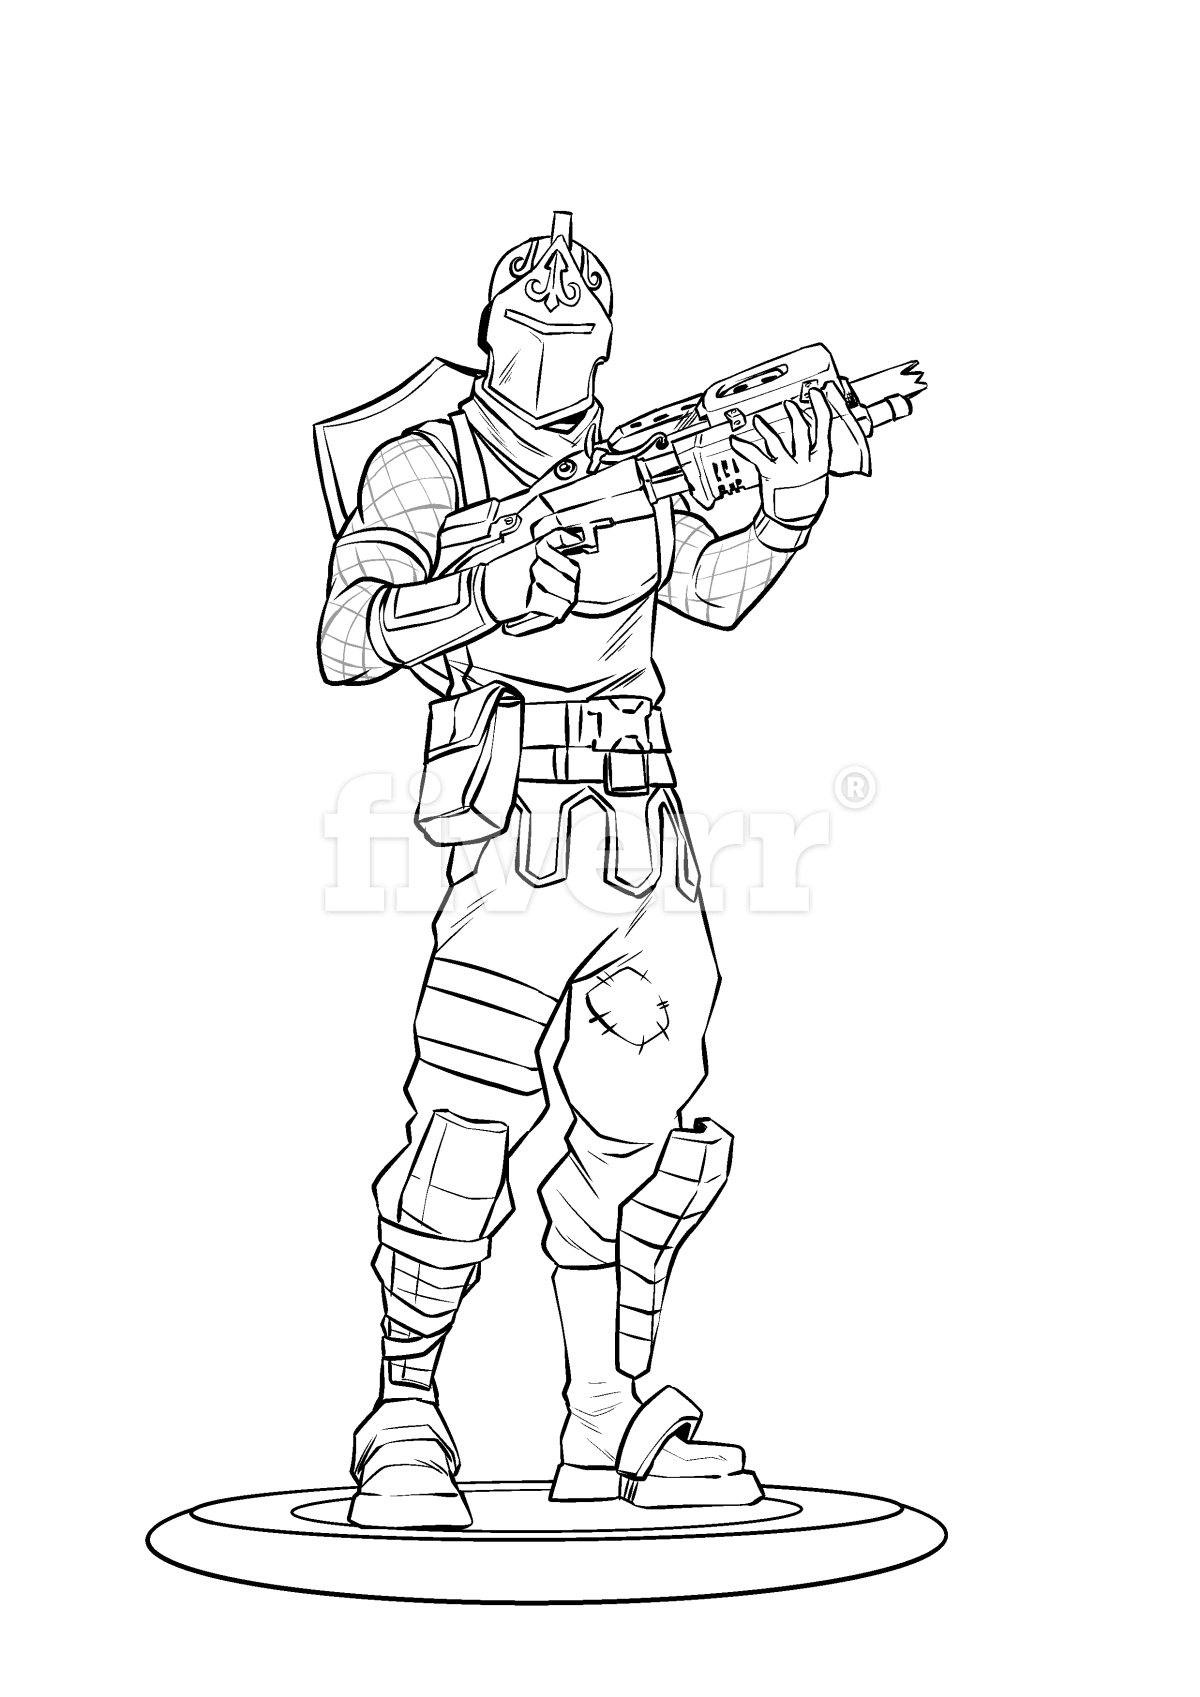 Draw you as a fortnite character by Ceronejuan